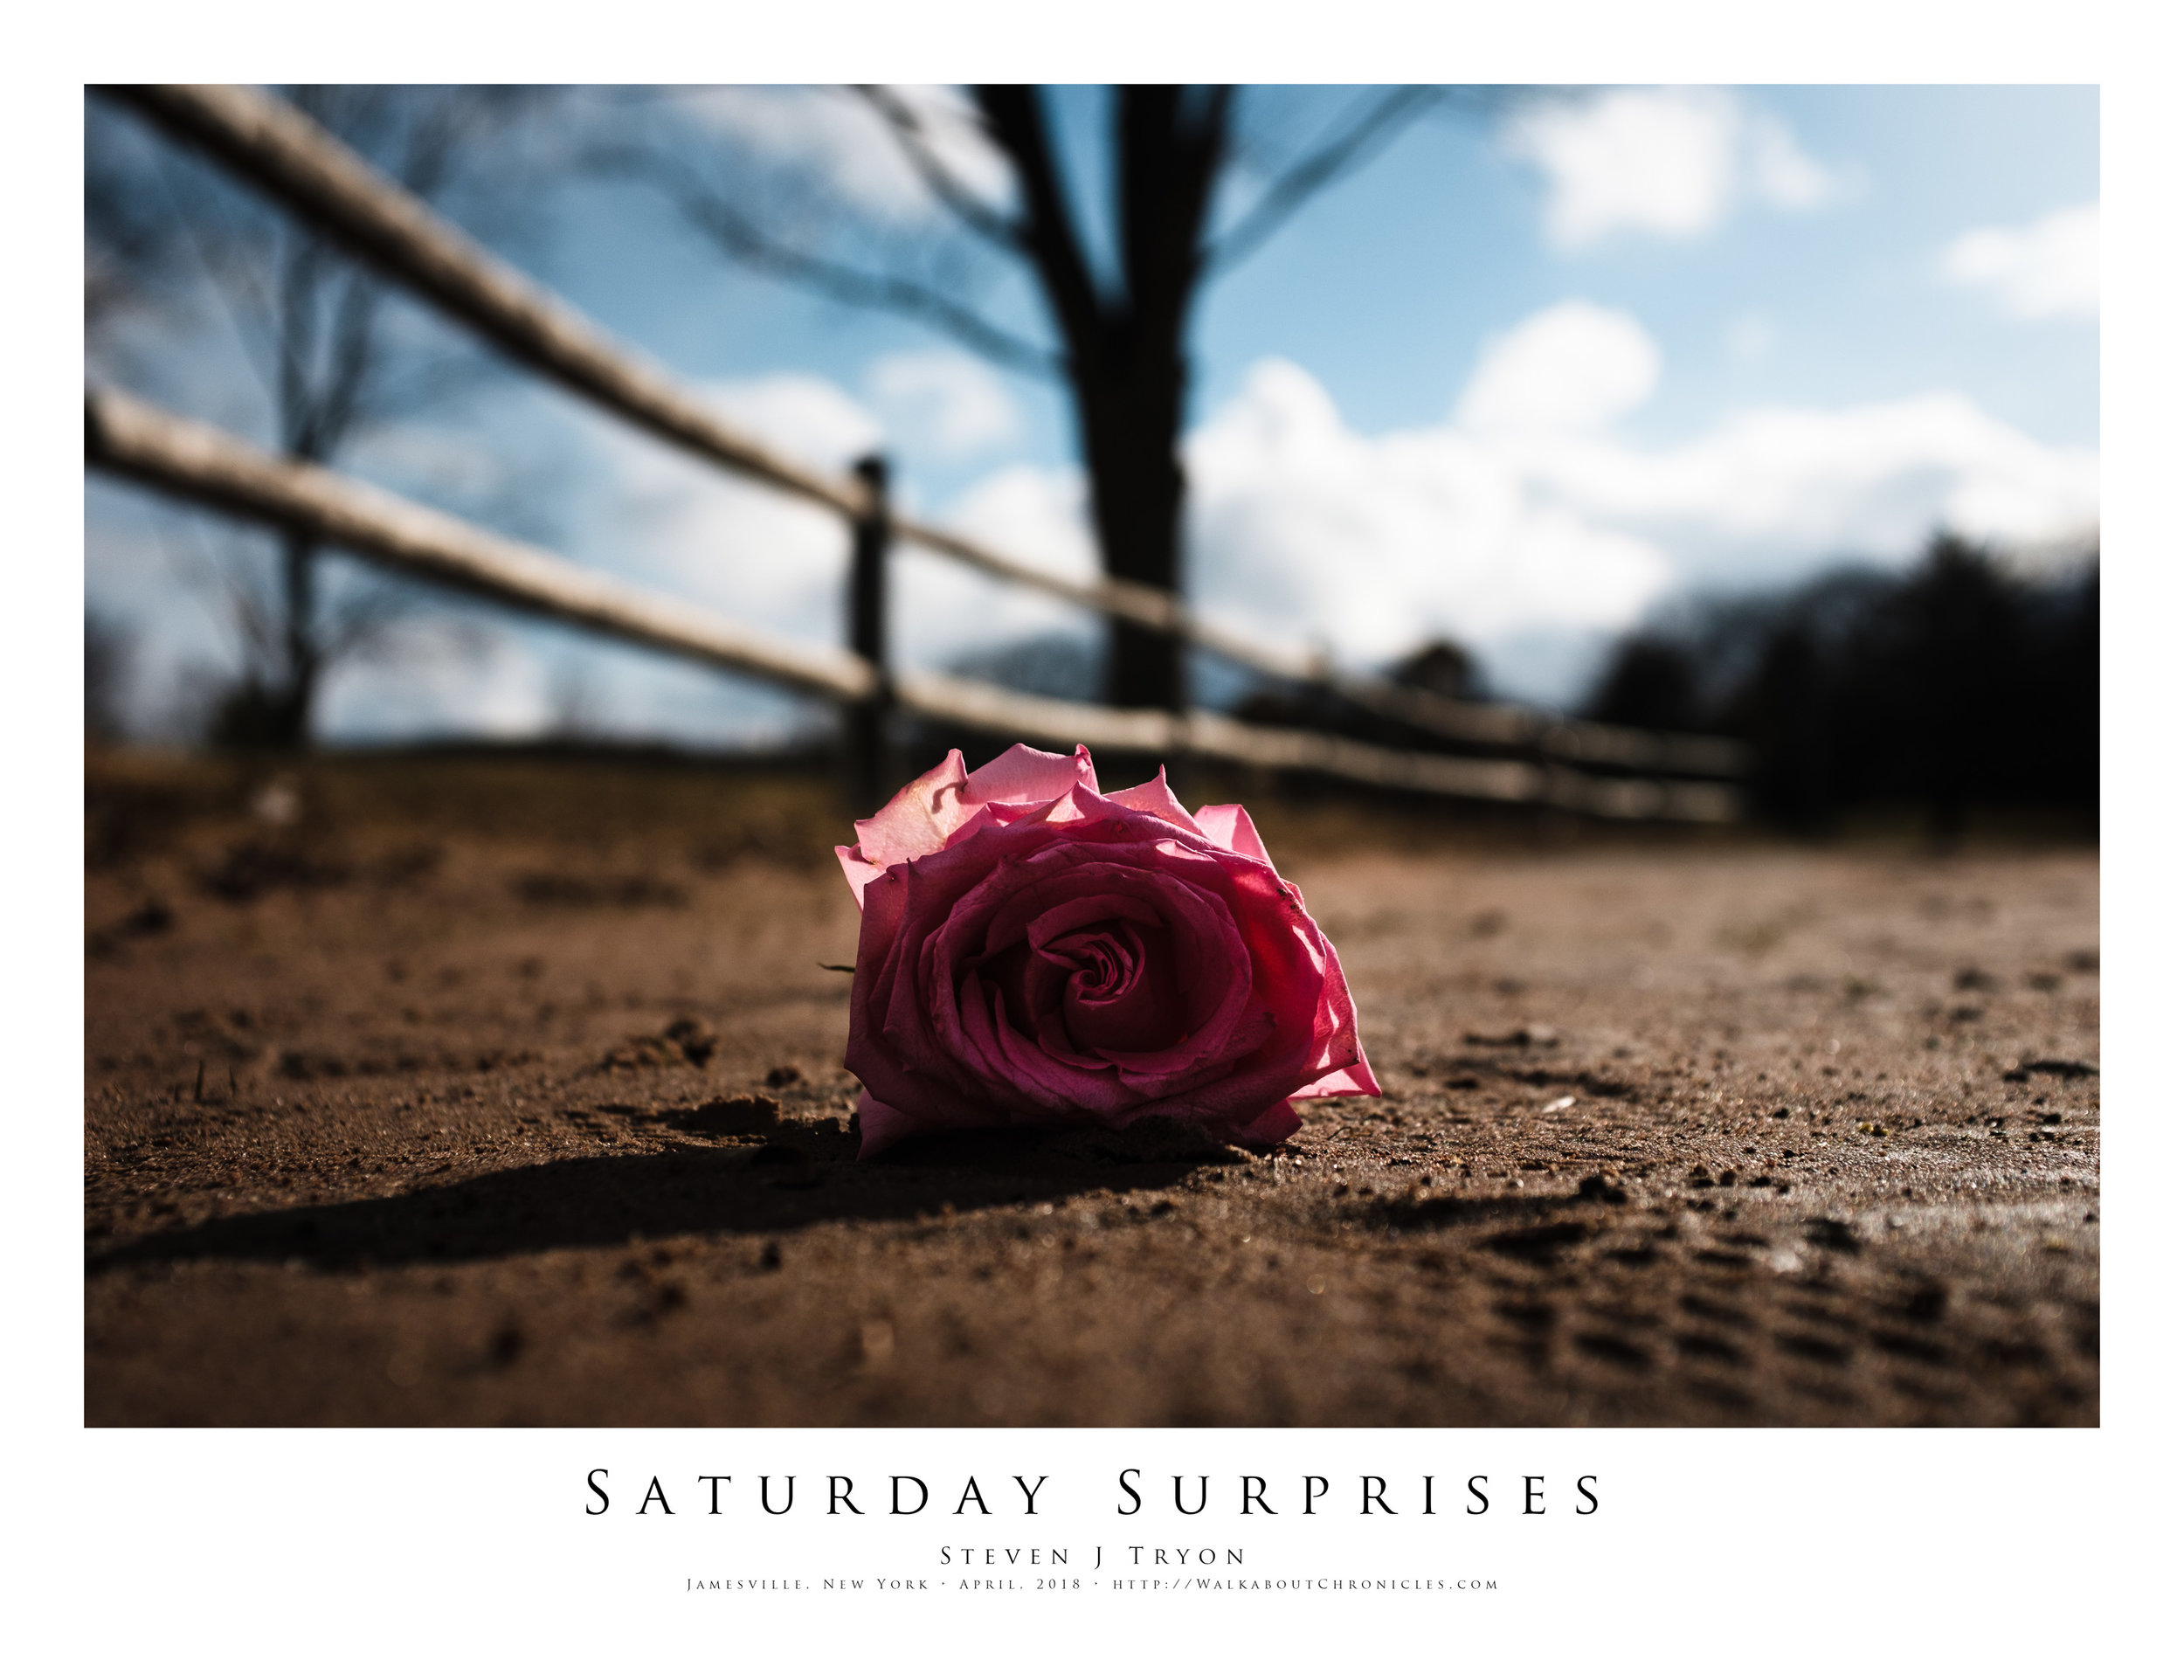 Saturday Surprises